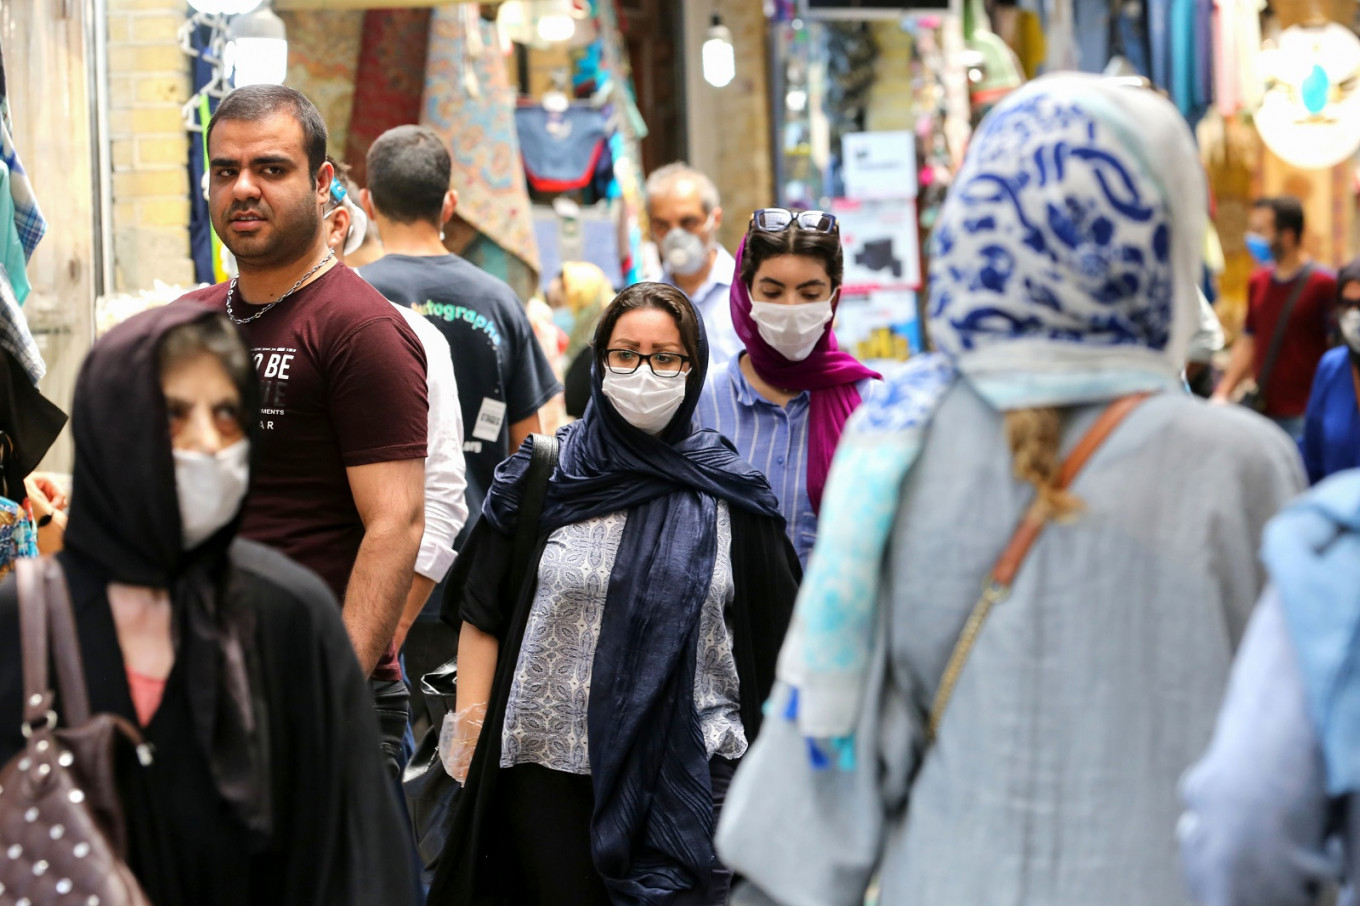 Iran reports highest virus cases for nearly a month